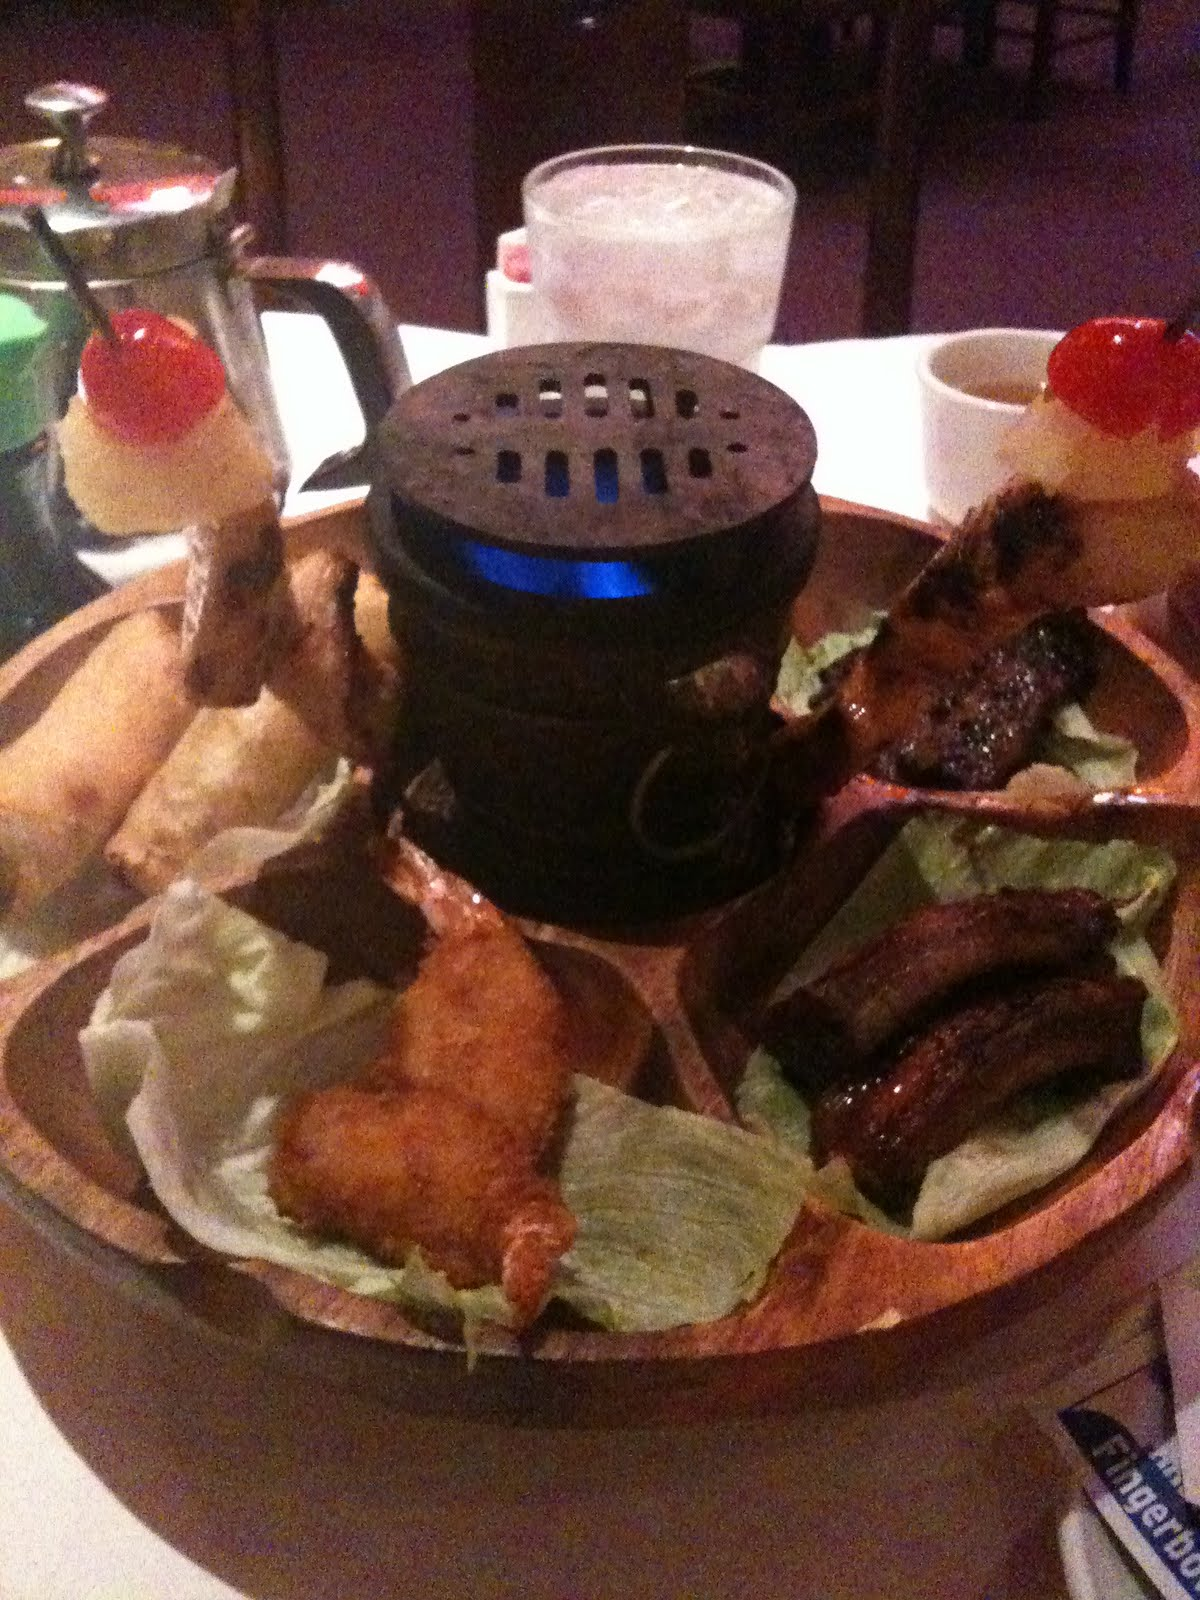 Practical Gifts: The Pu Pu Platter with Hibachi